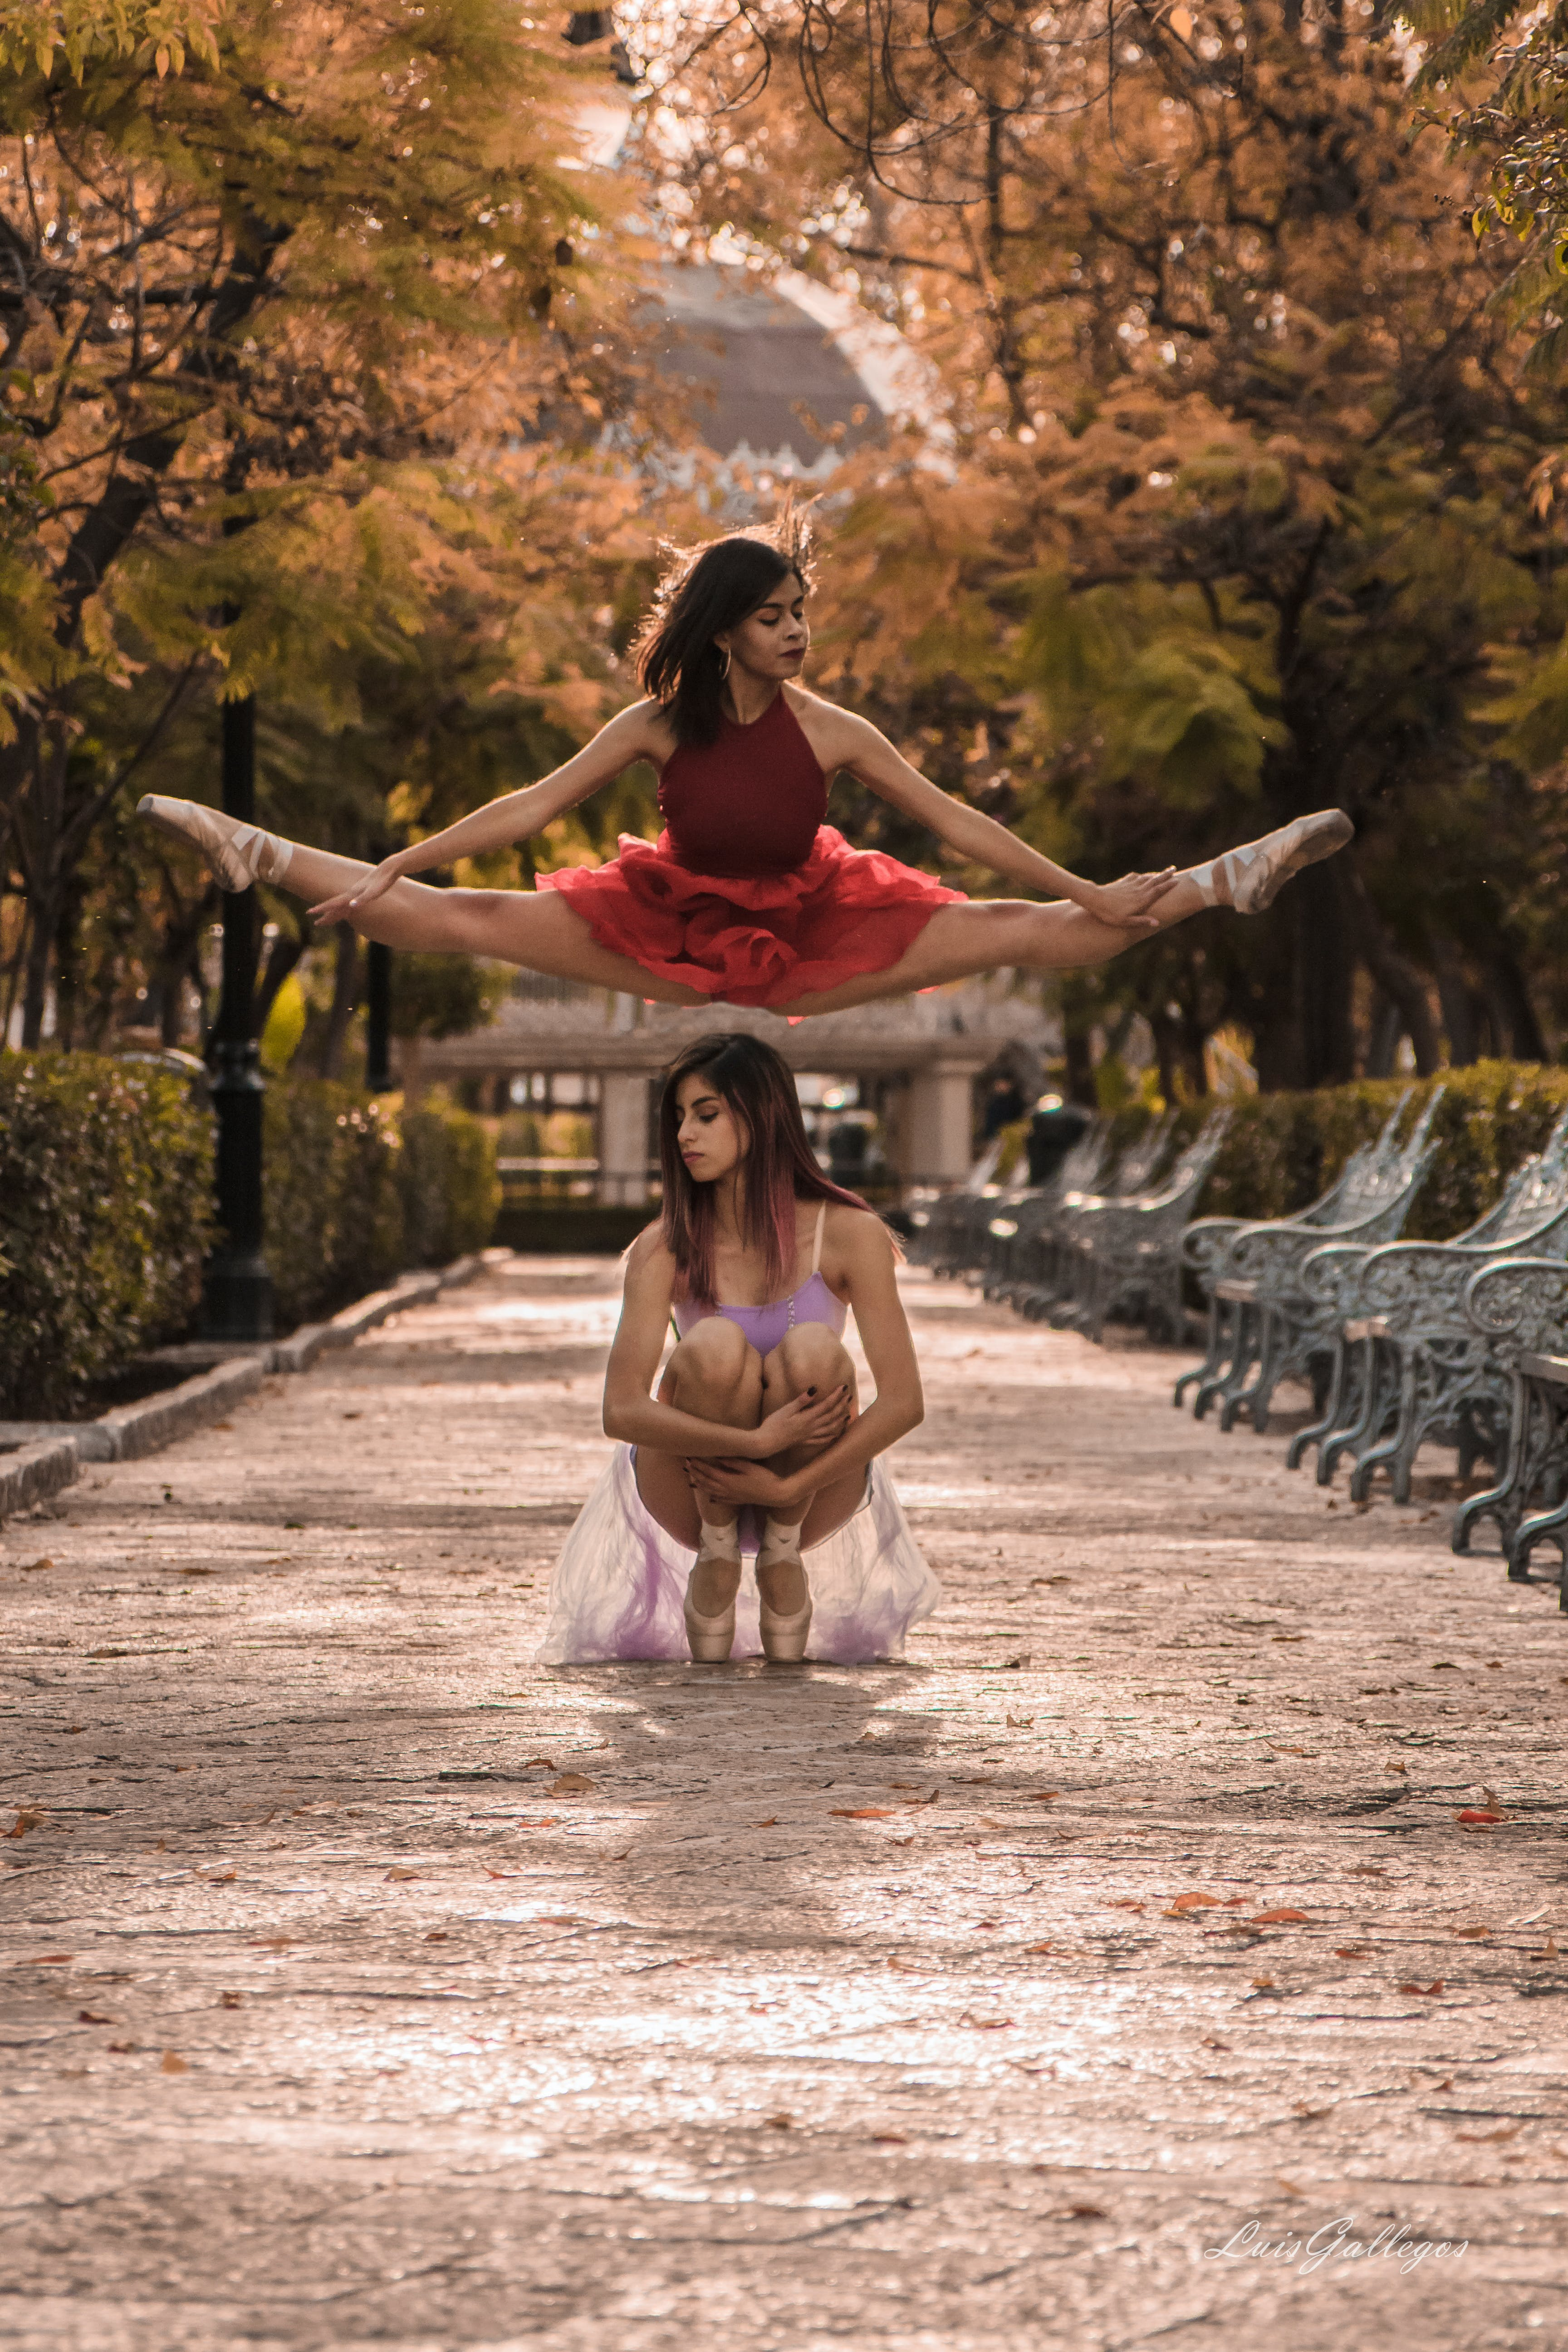 Woman Jumping on Top of another Woman Sitting on Gray Concrete Pathway